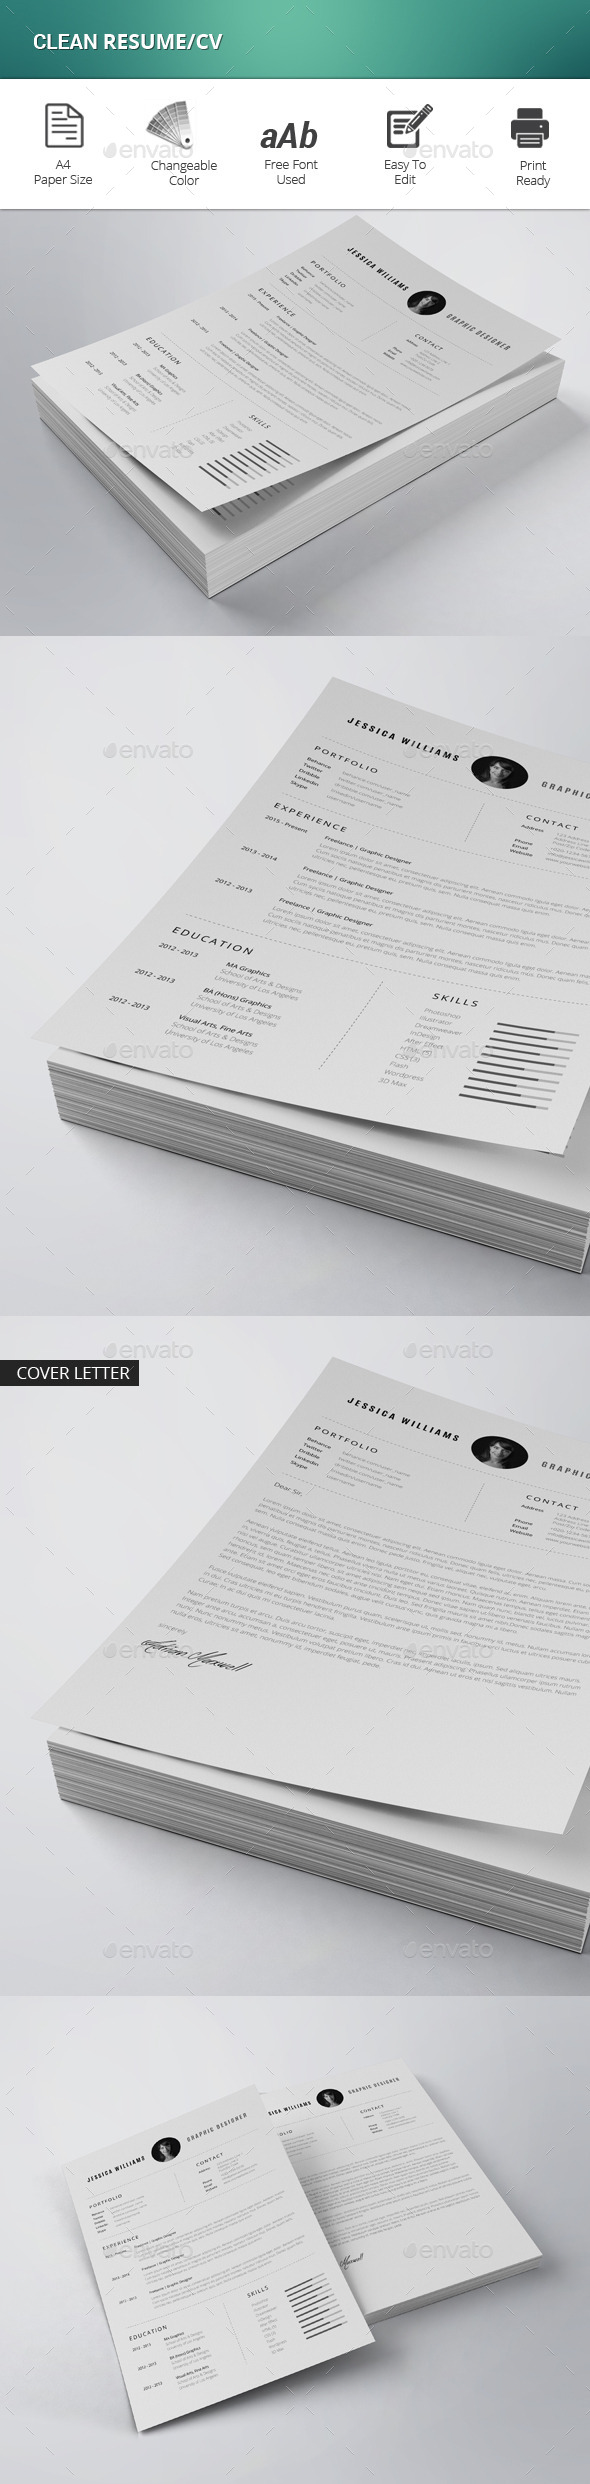 GraphicRiver Clean Resume CV 11866474